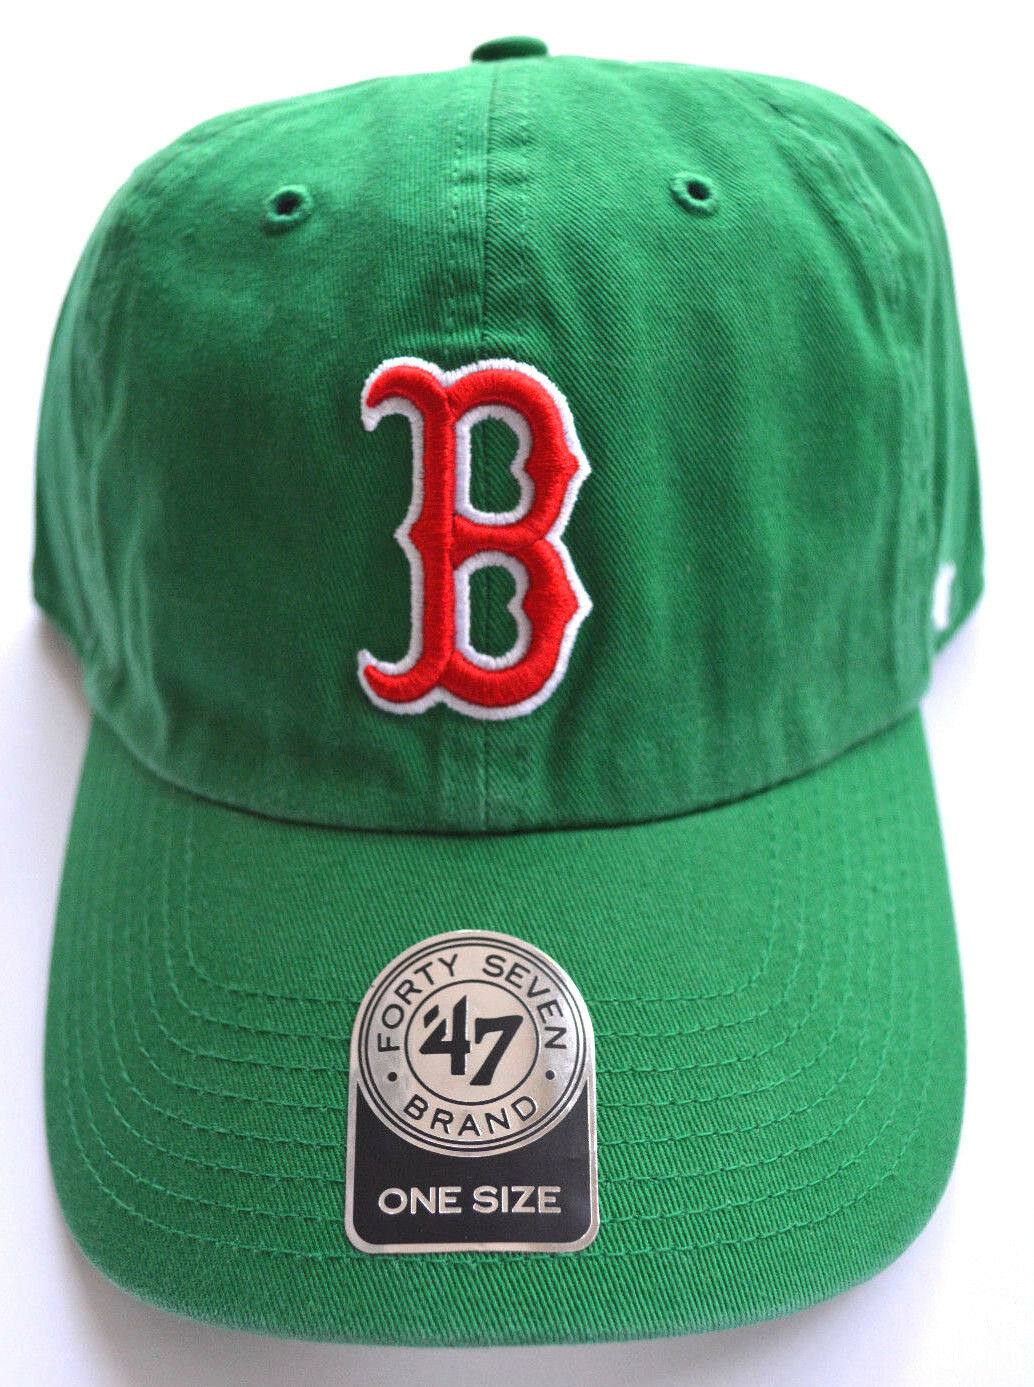 1420dd6ce4c13 Details about   NEW   BOSTON RED SOX ST PATRICKS DAY GREEN SHAMROCK HAT CAP  BY  47 BRAND